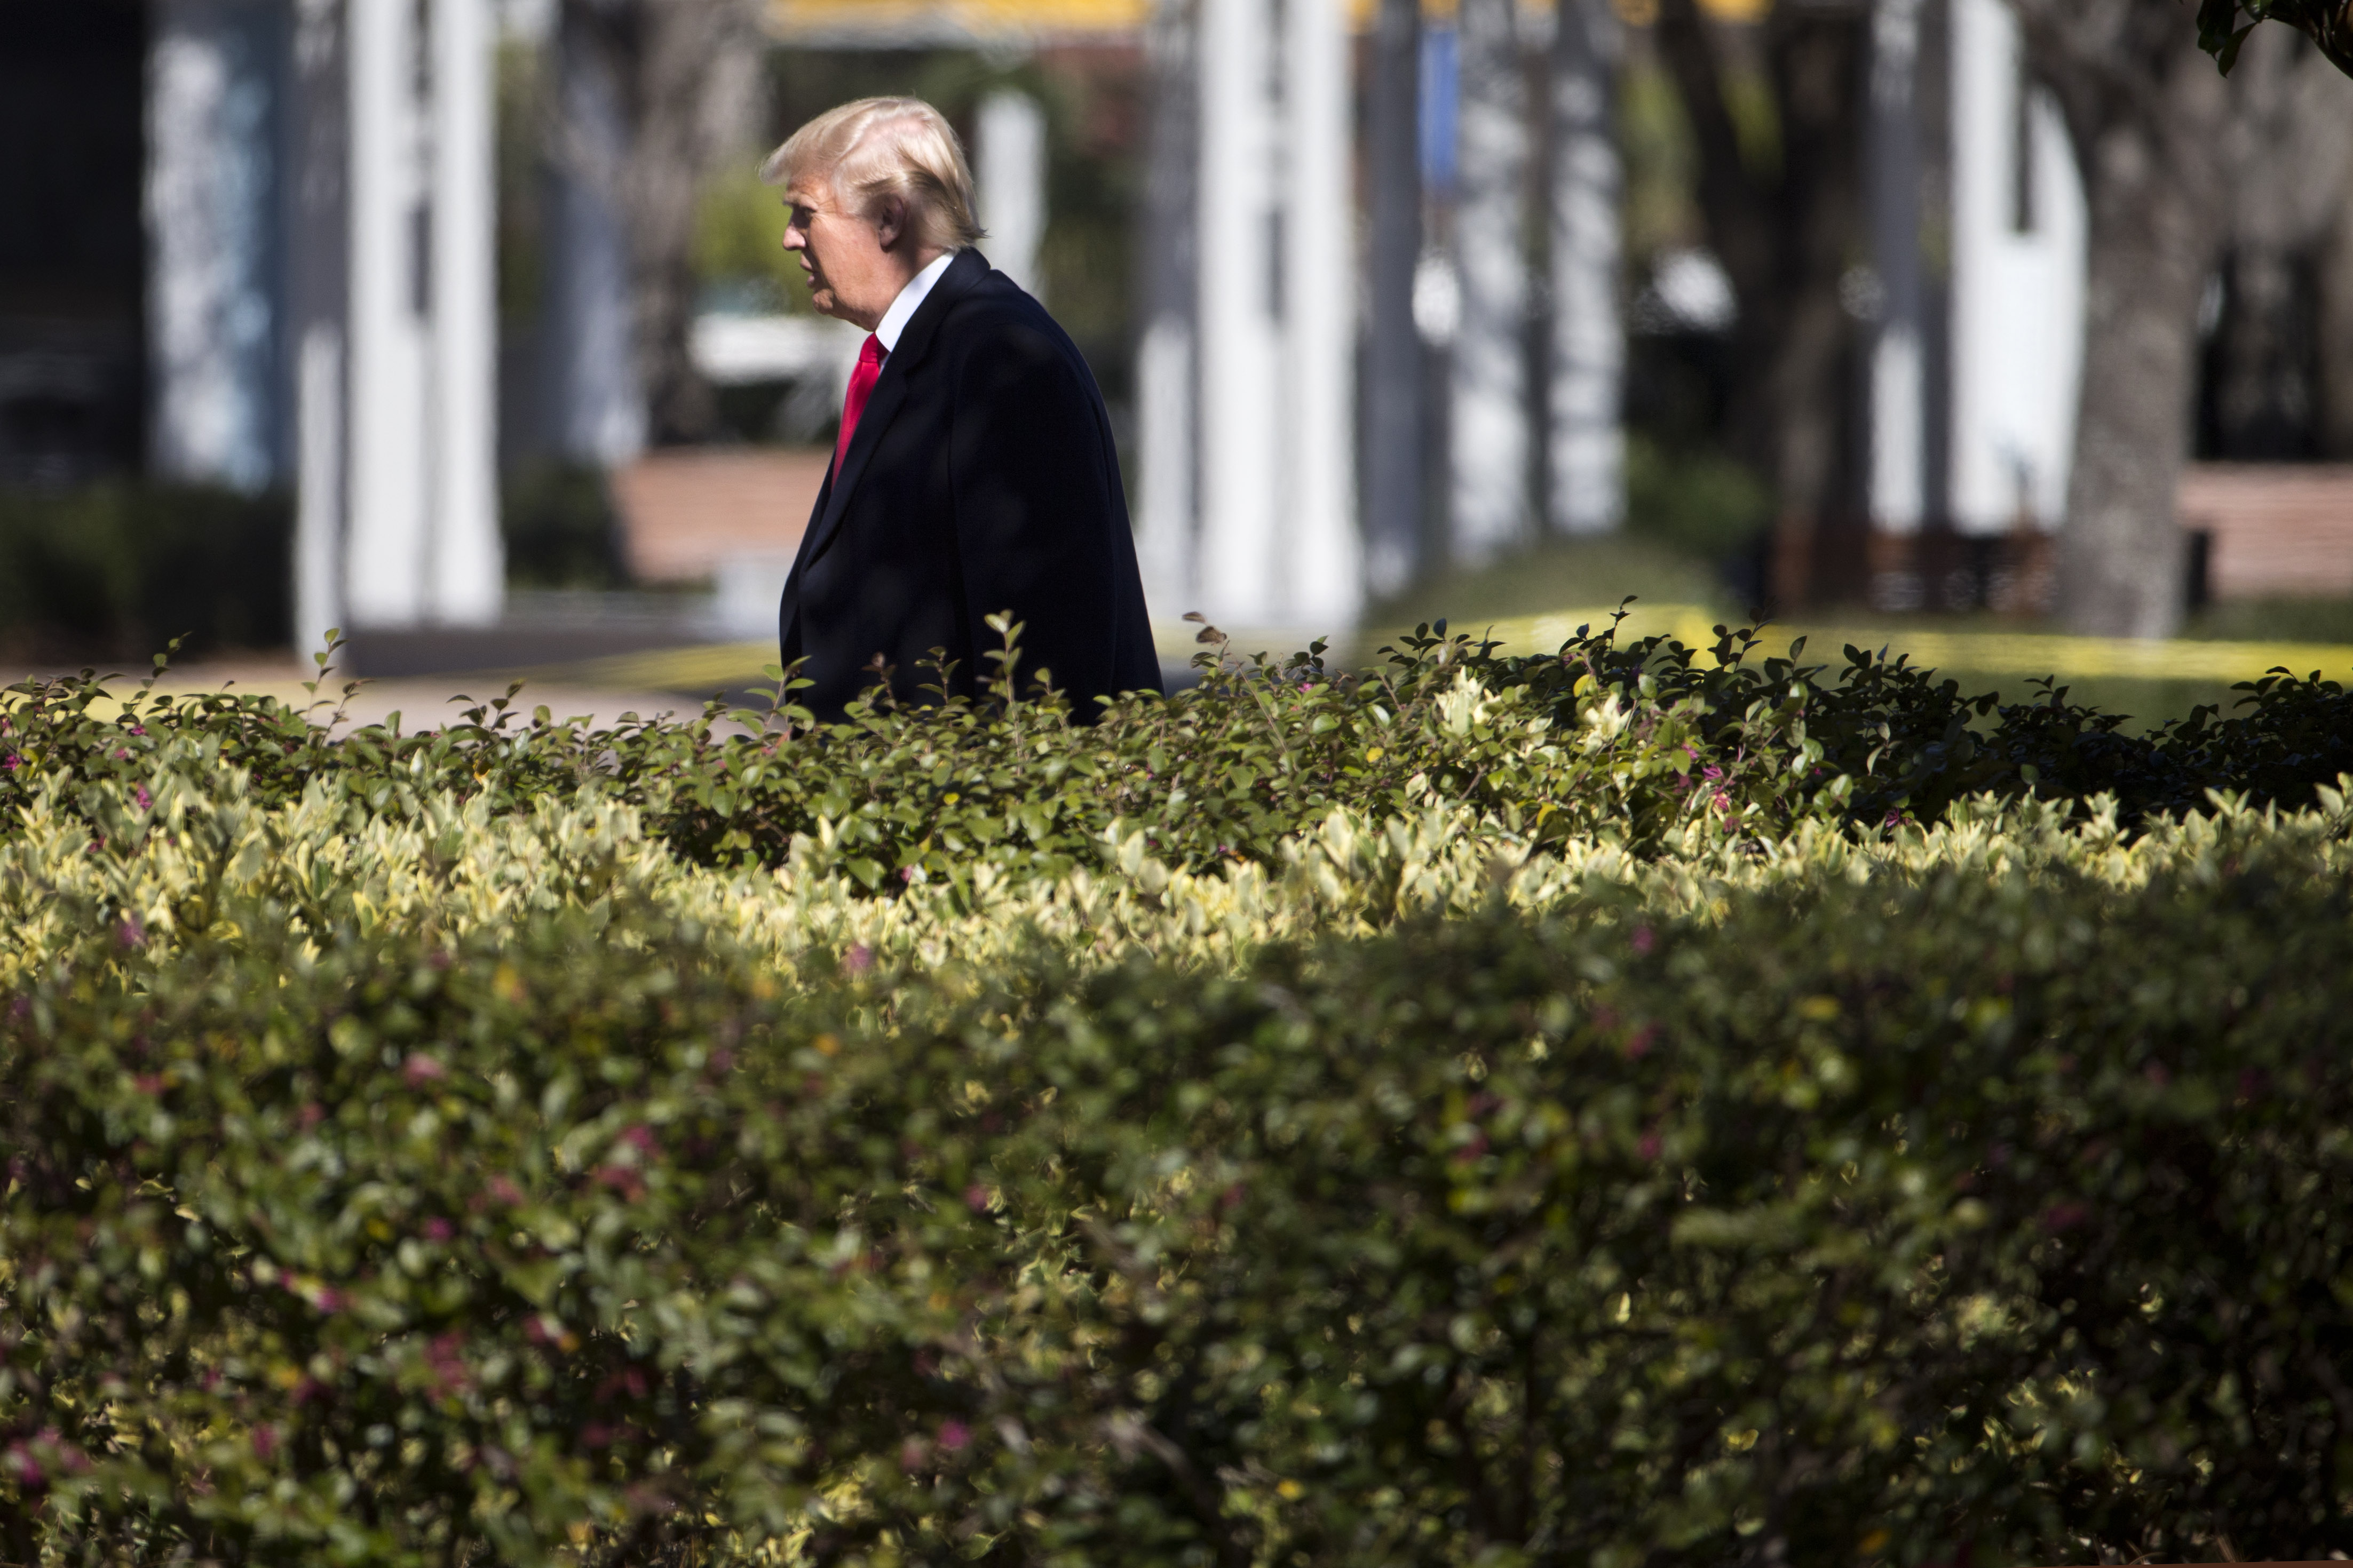 Republican presidential candidate Donald Trump walks from a campaign stop Wednesday, Feb. 17, 2016, in Bluffton, S.C. (AP Photo/Matt Rourke)